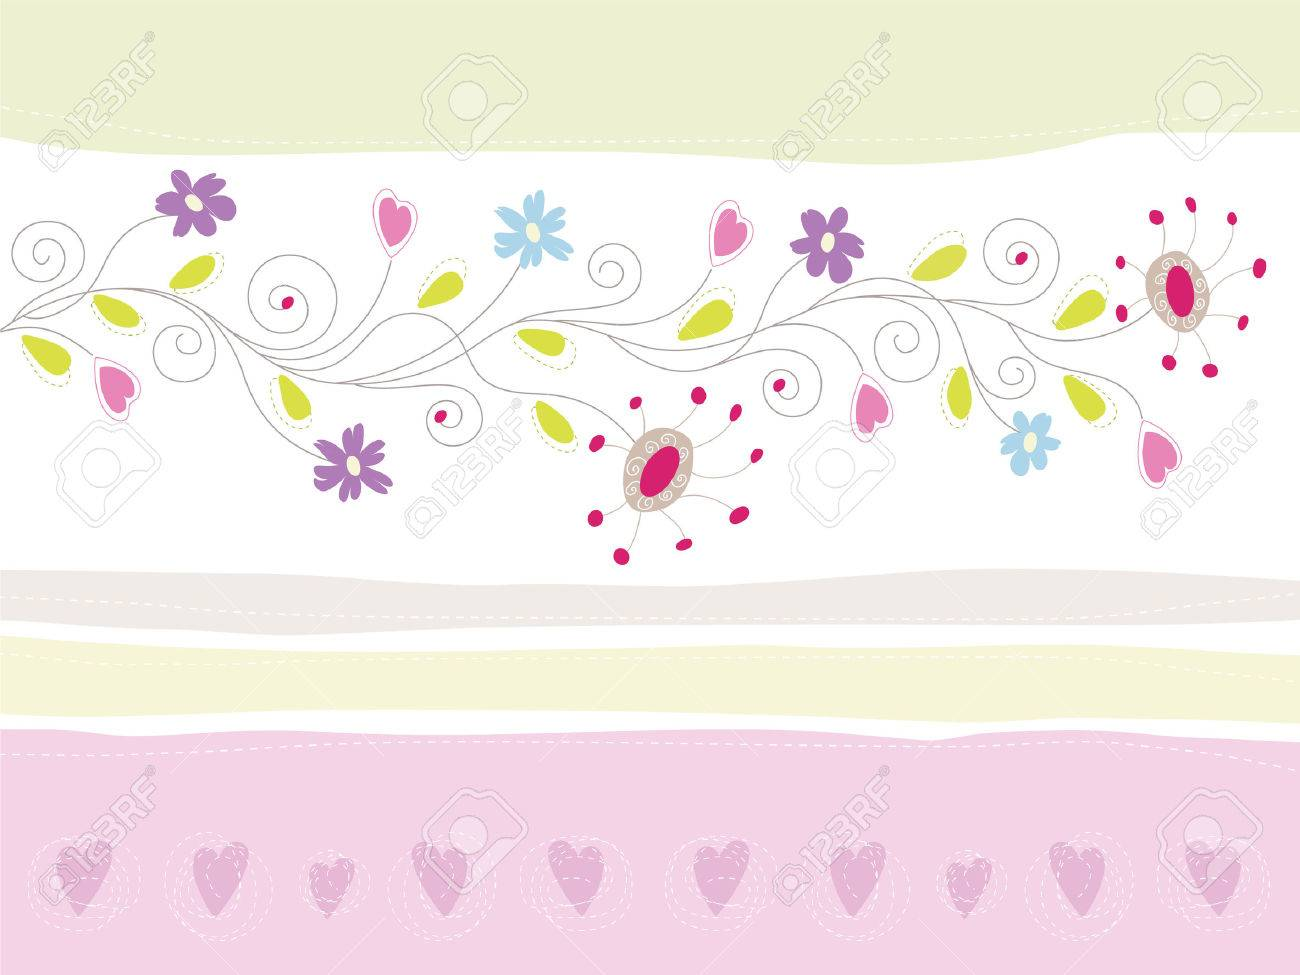 Floral Greeting Card Stock Vector - 6167907